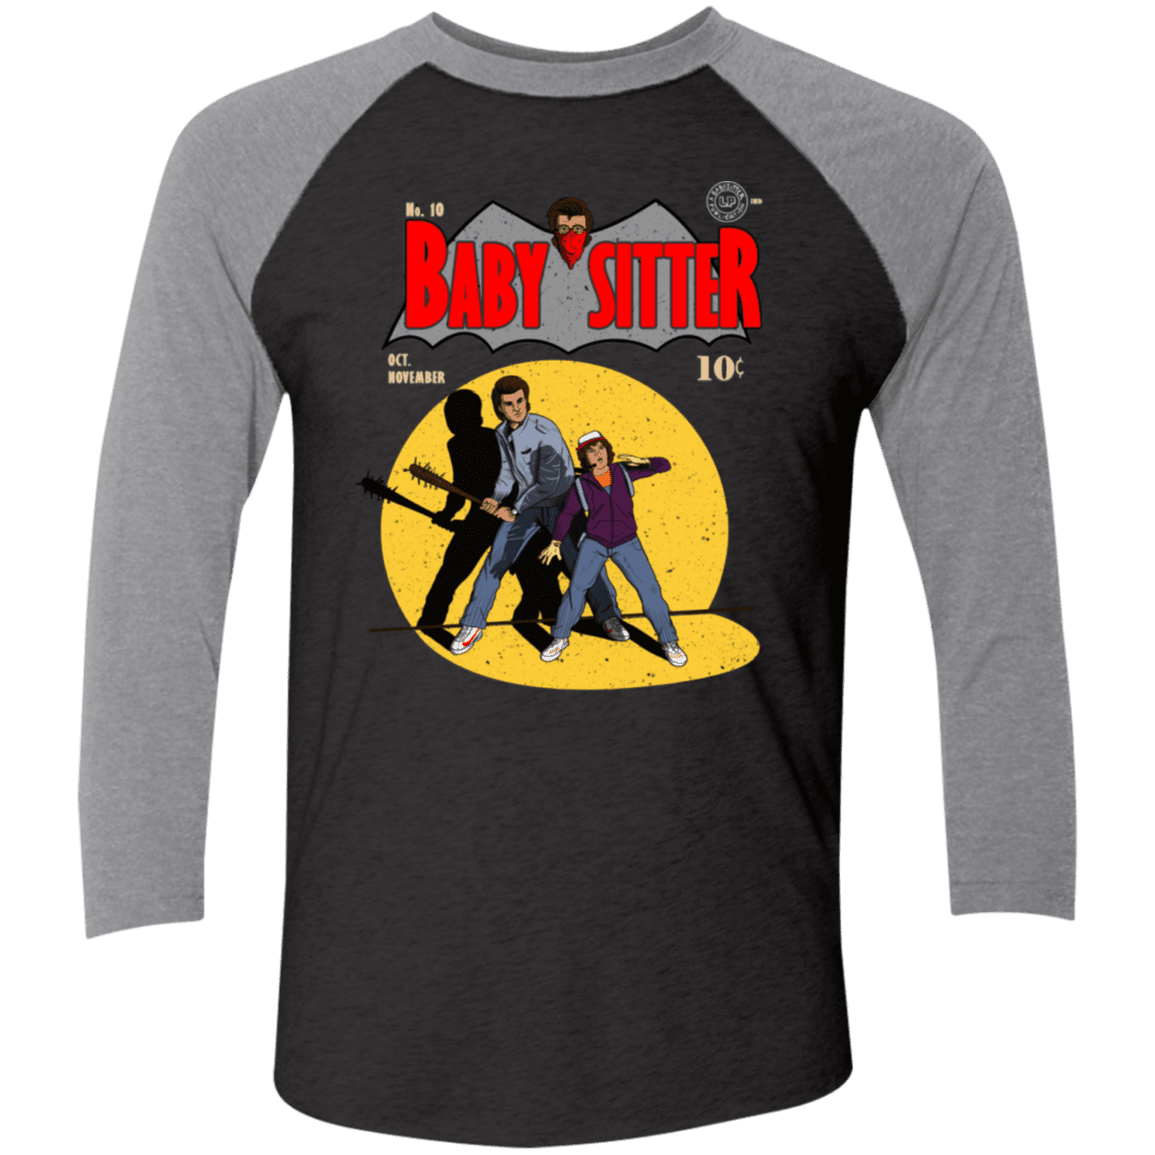 T-Shirts Vintage Black/Premium Heather / X-Small Babysitter Batman Men's Triblend 3/4 Sleeve